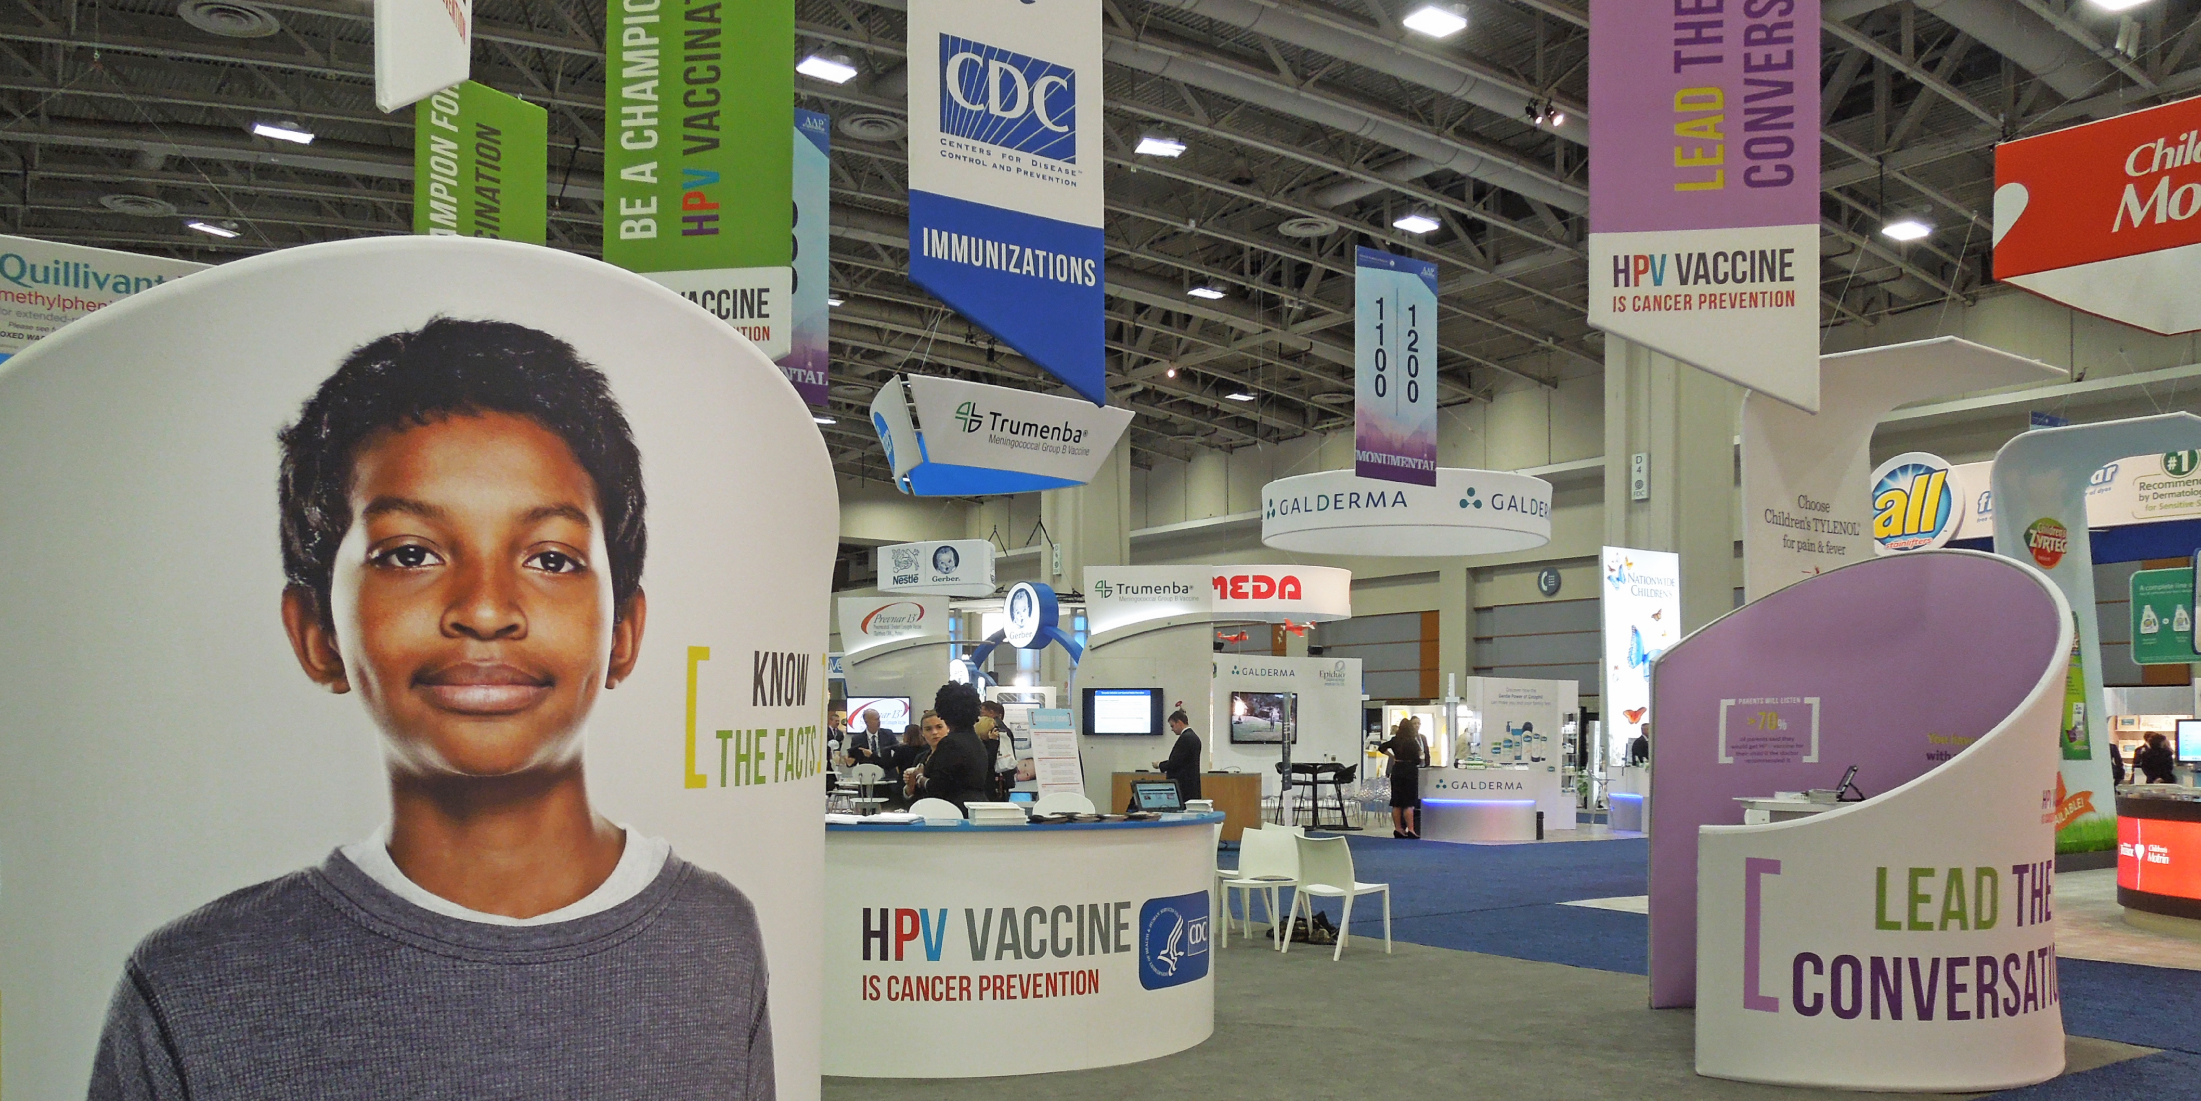 Hpv Cdc Events Conferences 3